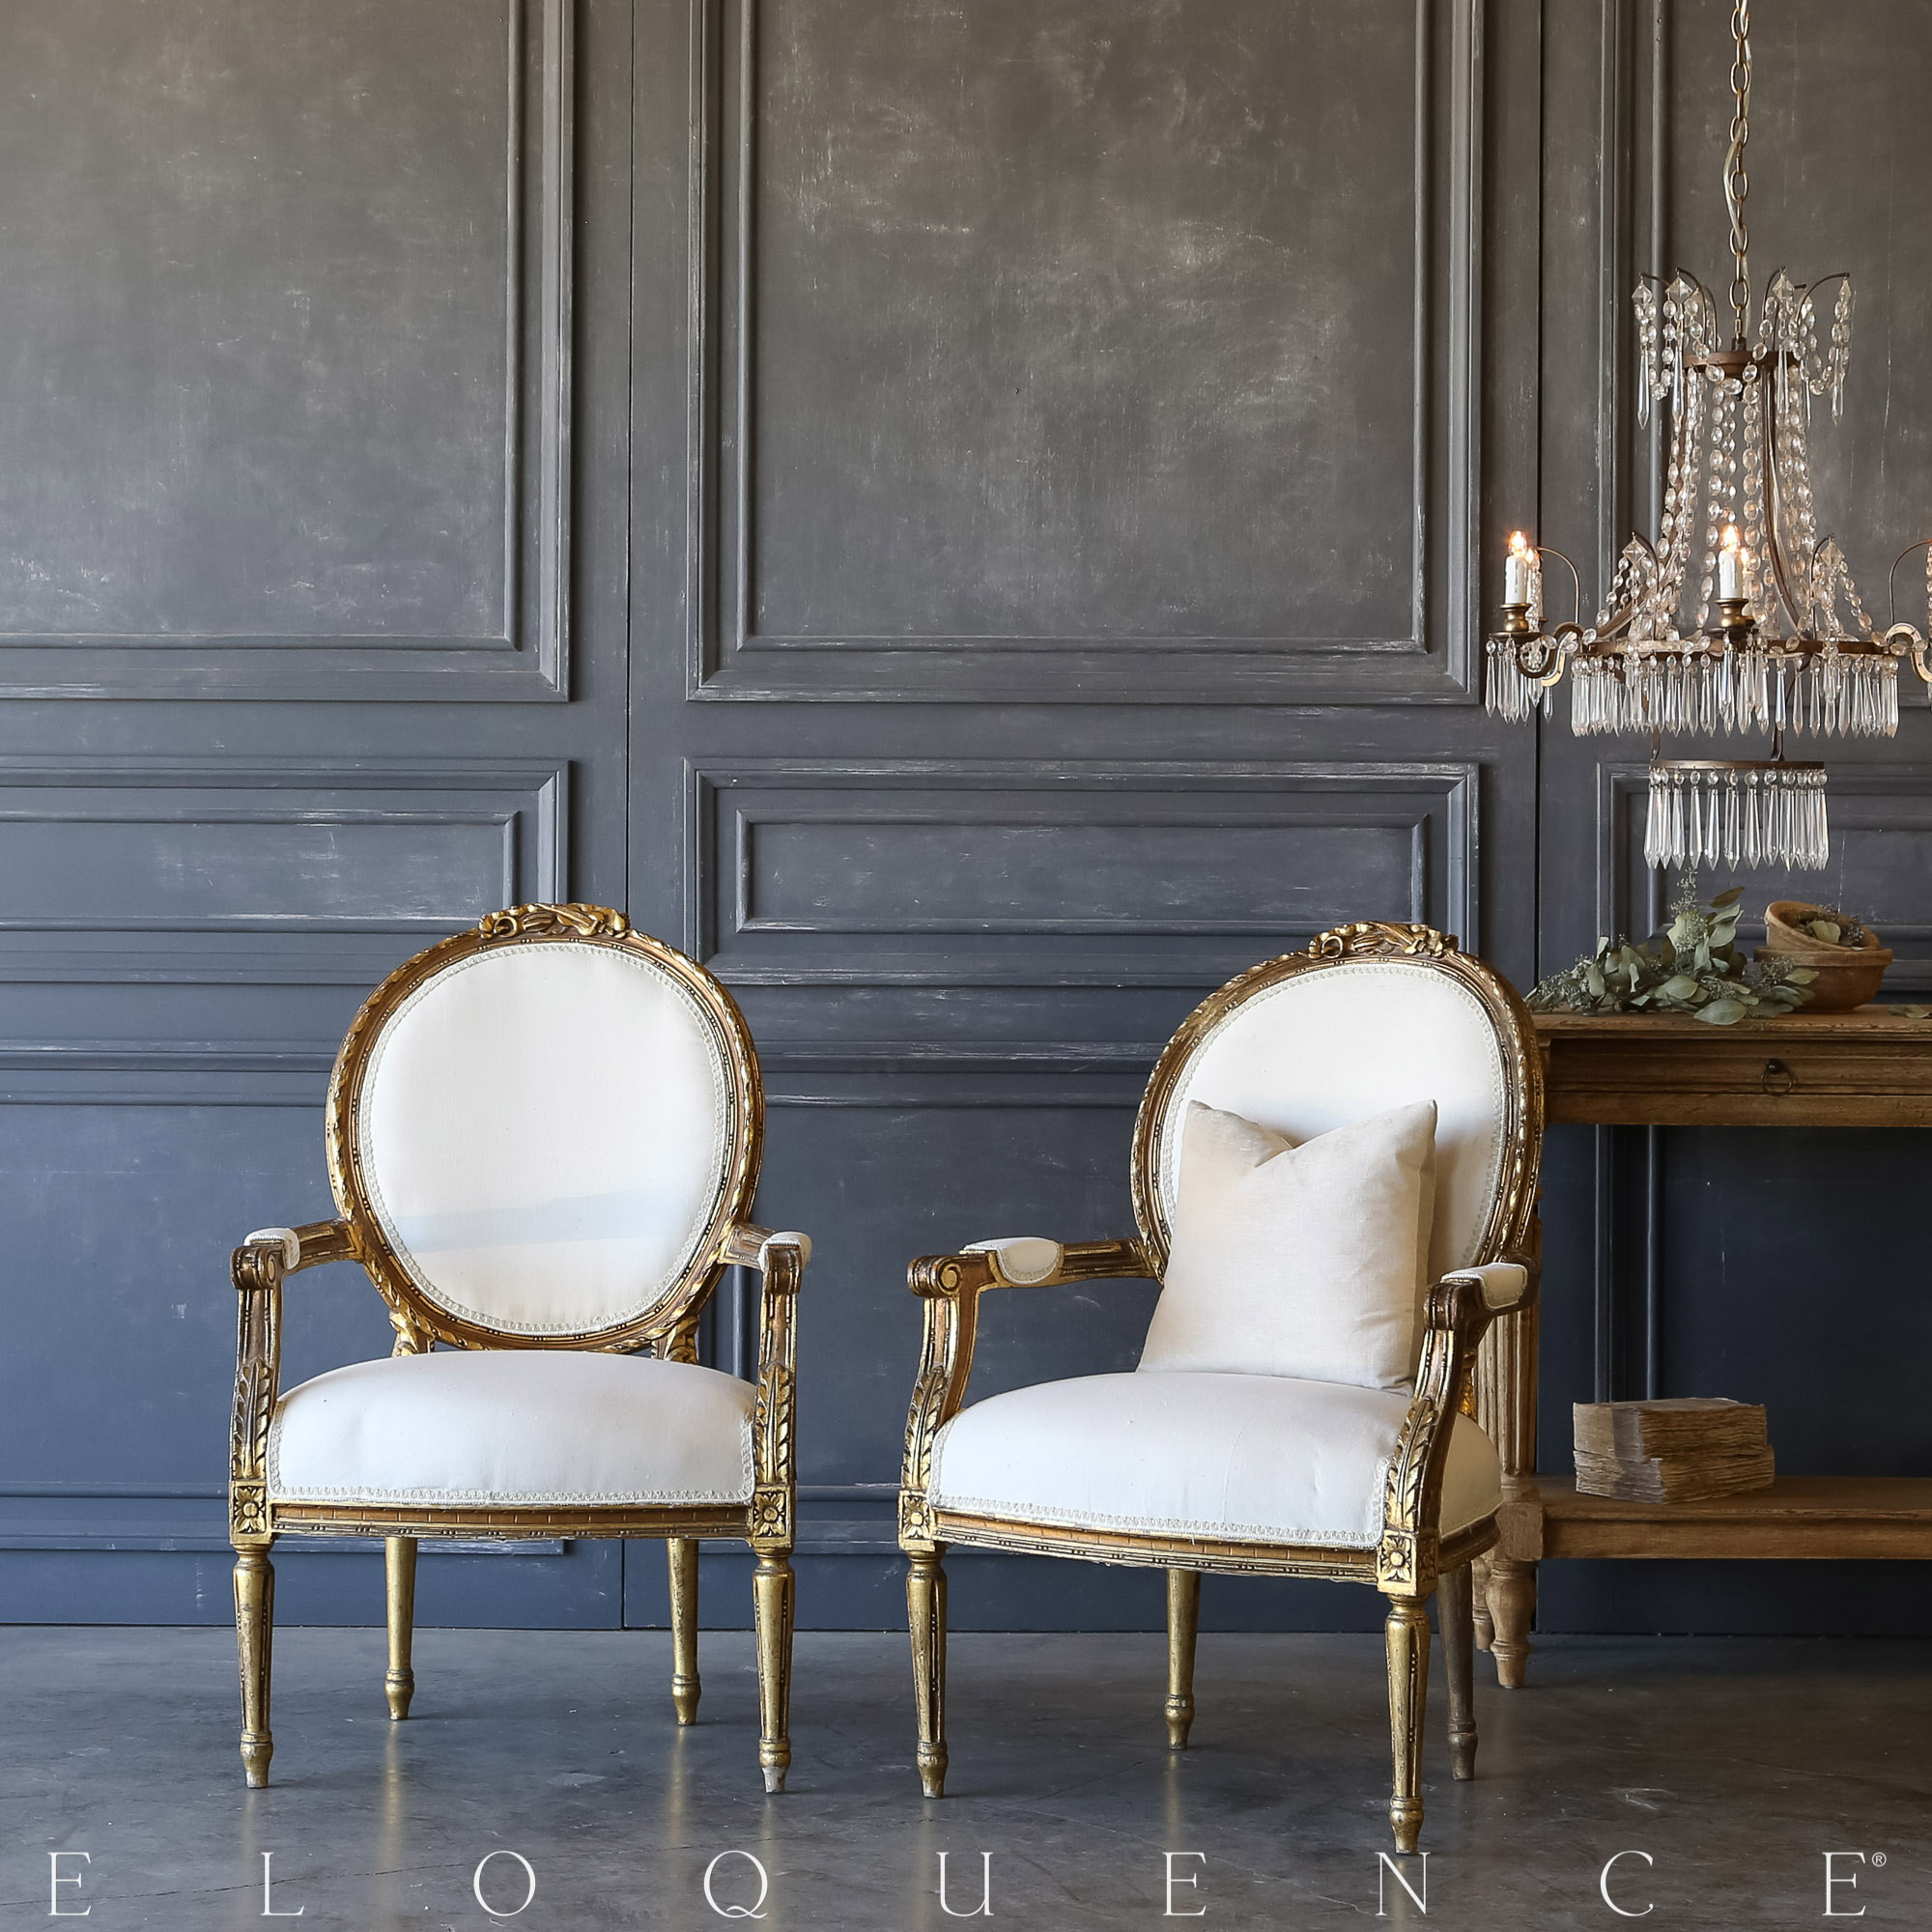 Eloquence® Pair of Vintage Gold Acanthus Armchairs: 1940